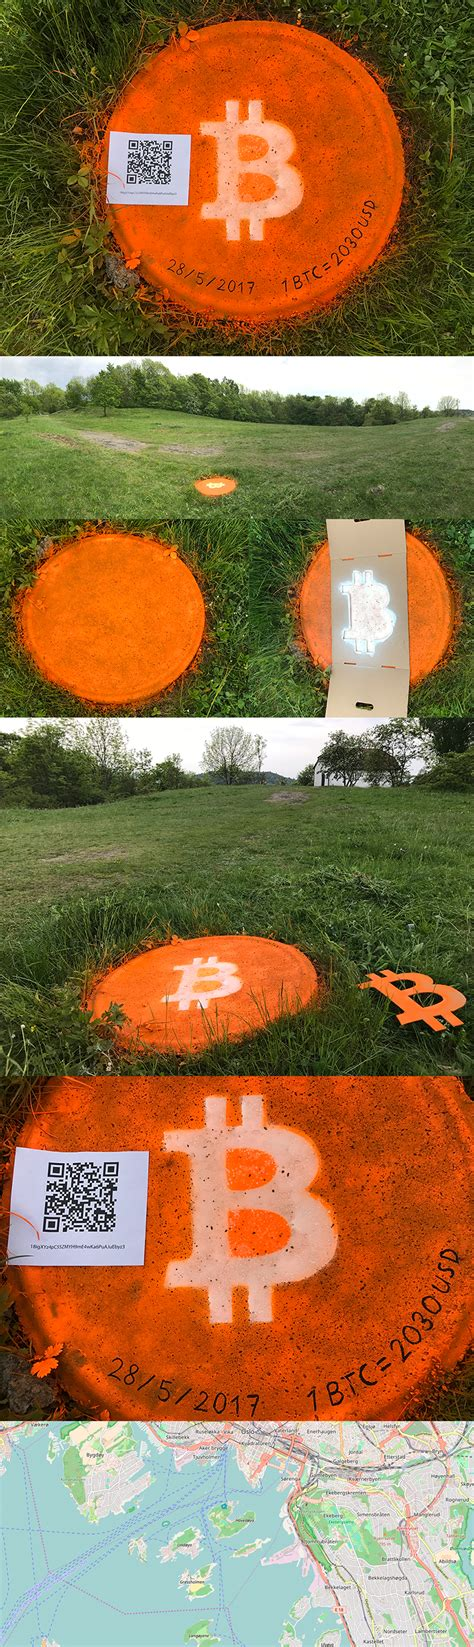 Bitcoins are all the buzz. Bitcoin found on an island in the Oslo fjord : btc